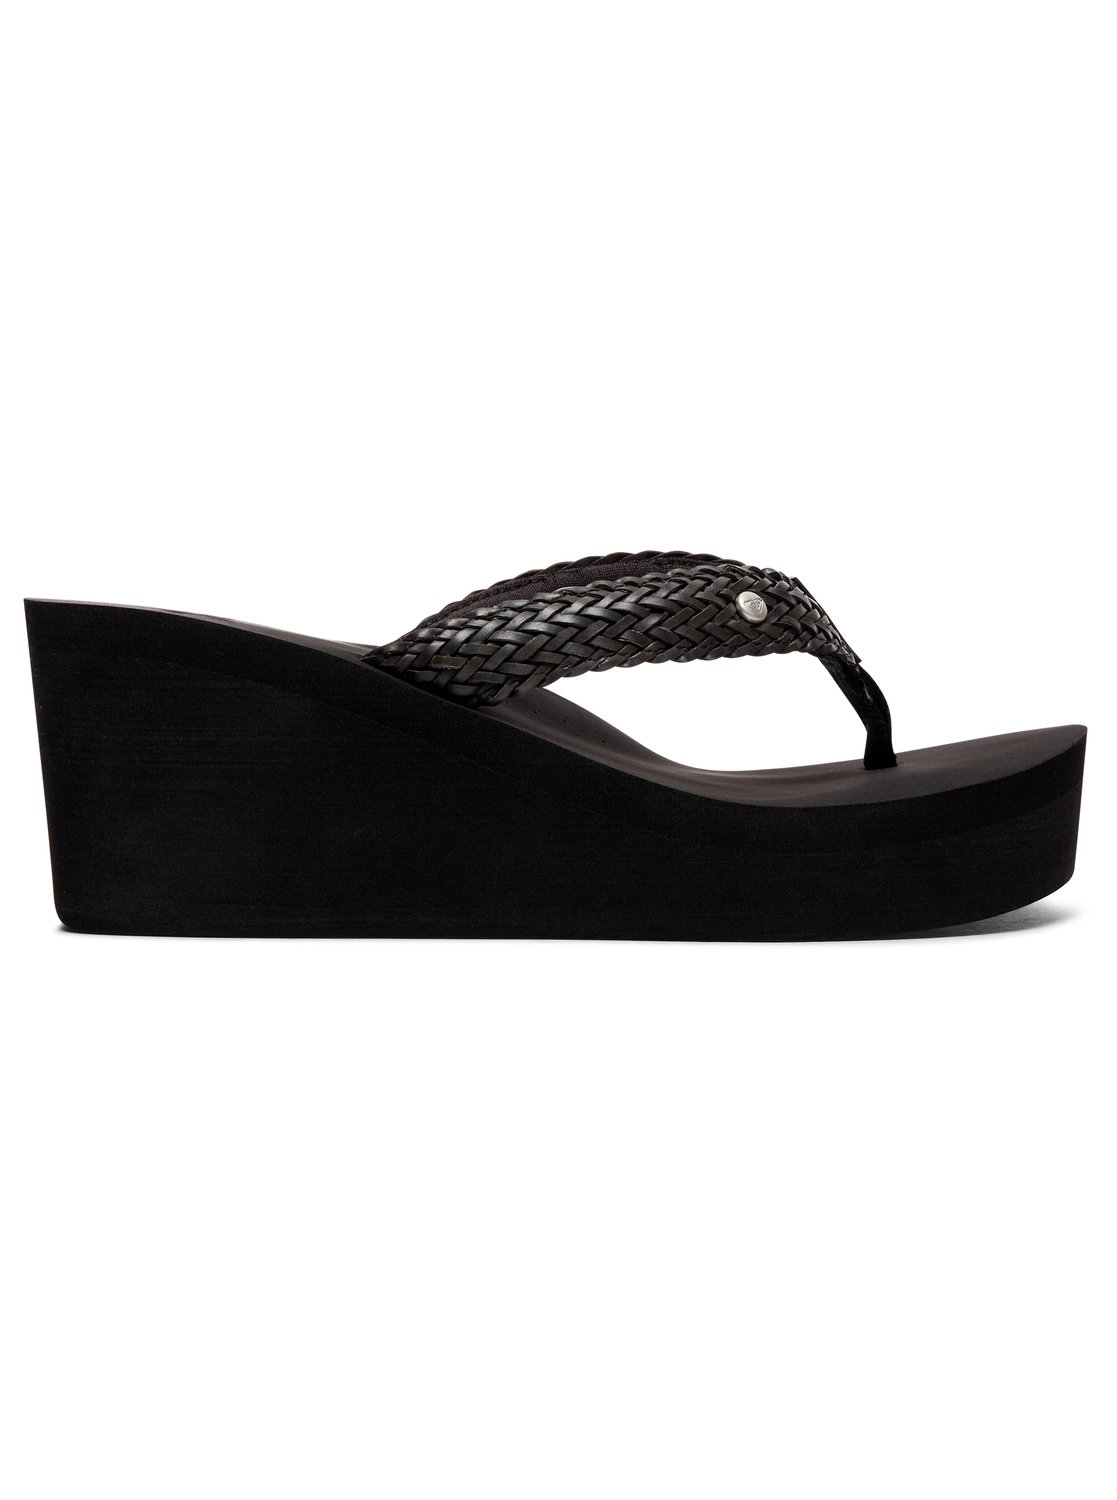 8f68e1b2c7be2b ROXY Mellie Wedge Flip Flops ARJL100675 7. About this product. Picture 1 of  5  Picture 2 of 5 ...